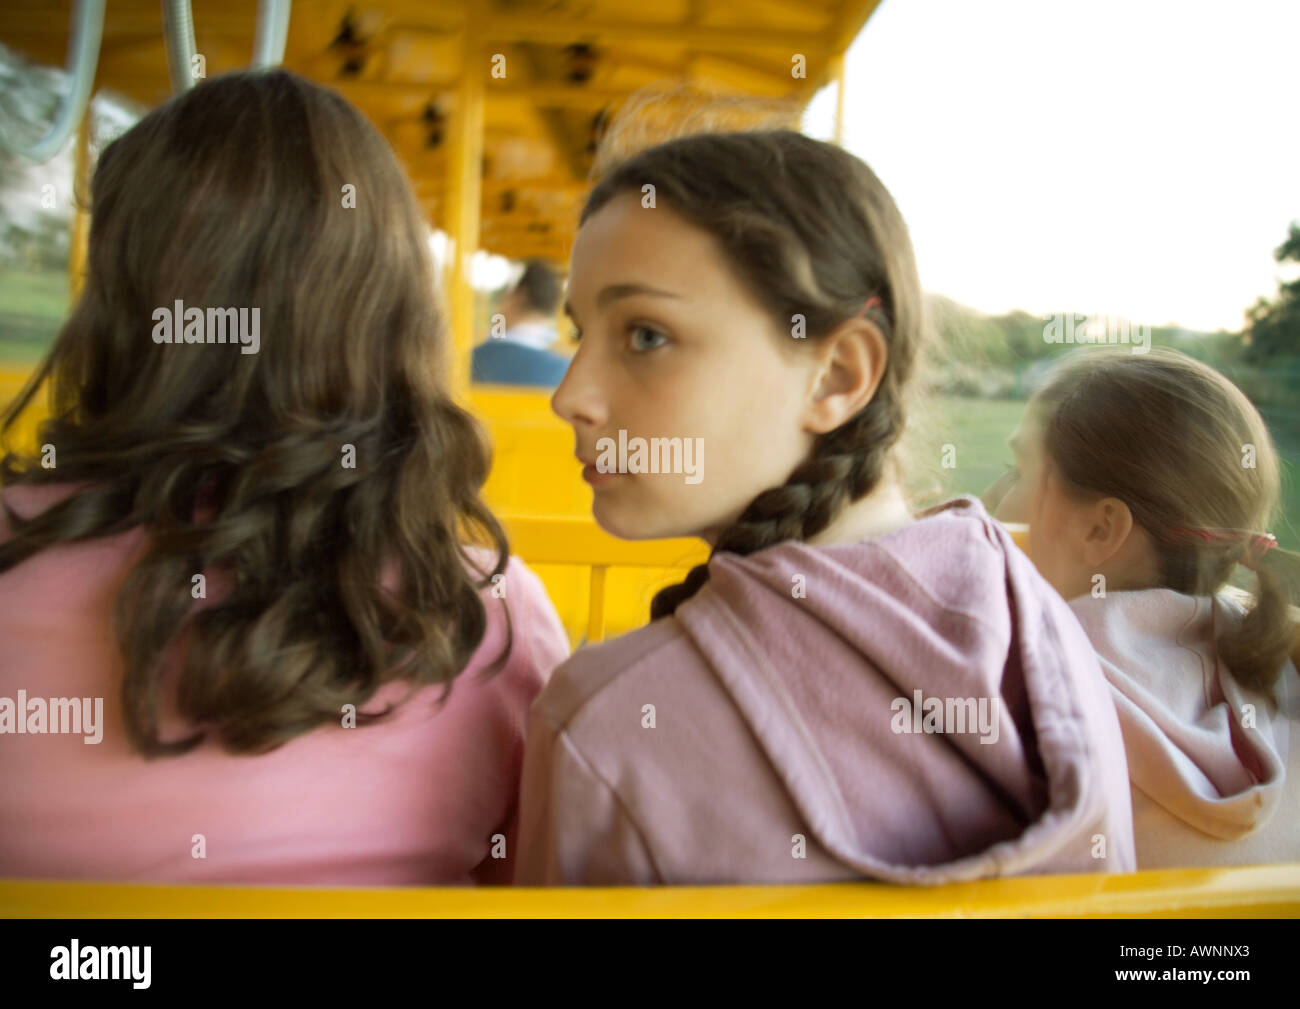 Preteen girls riding train in amusement park, rear view - Stock Image